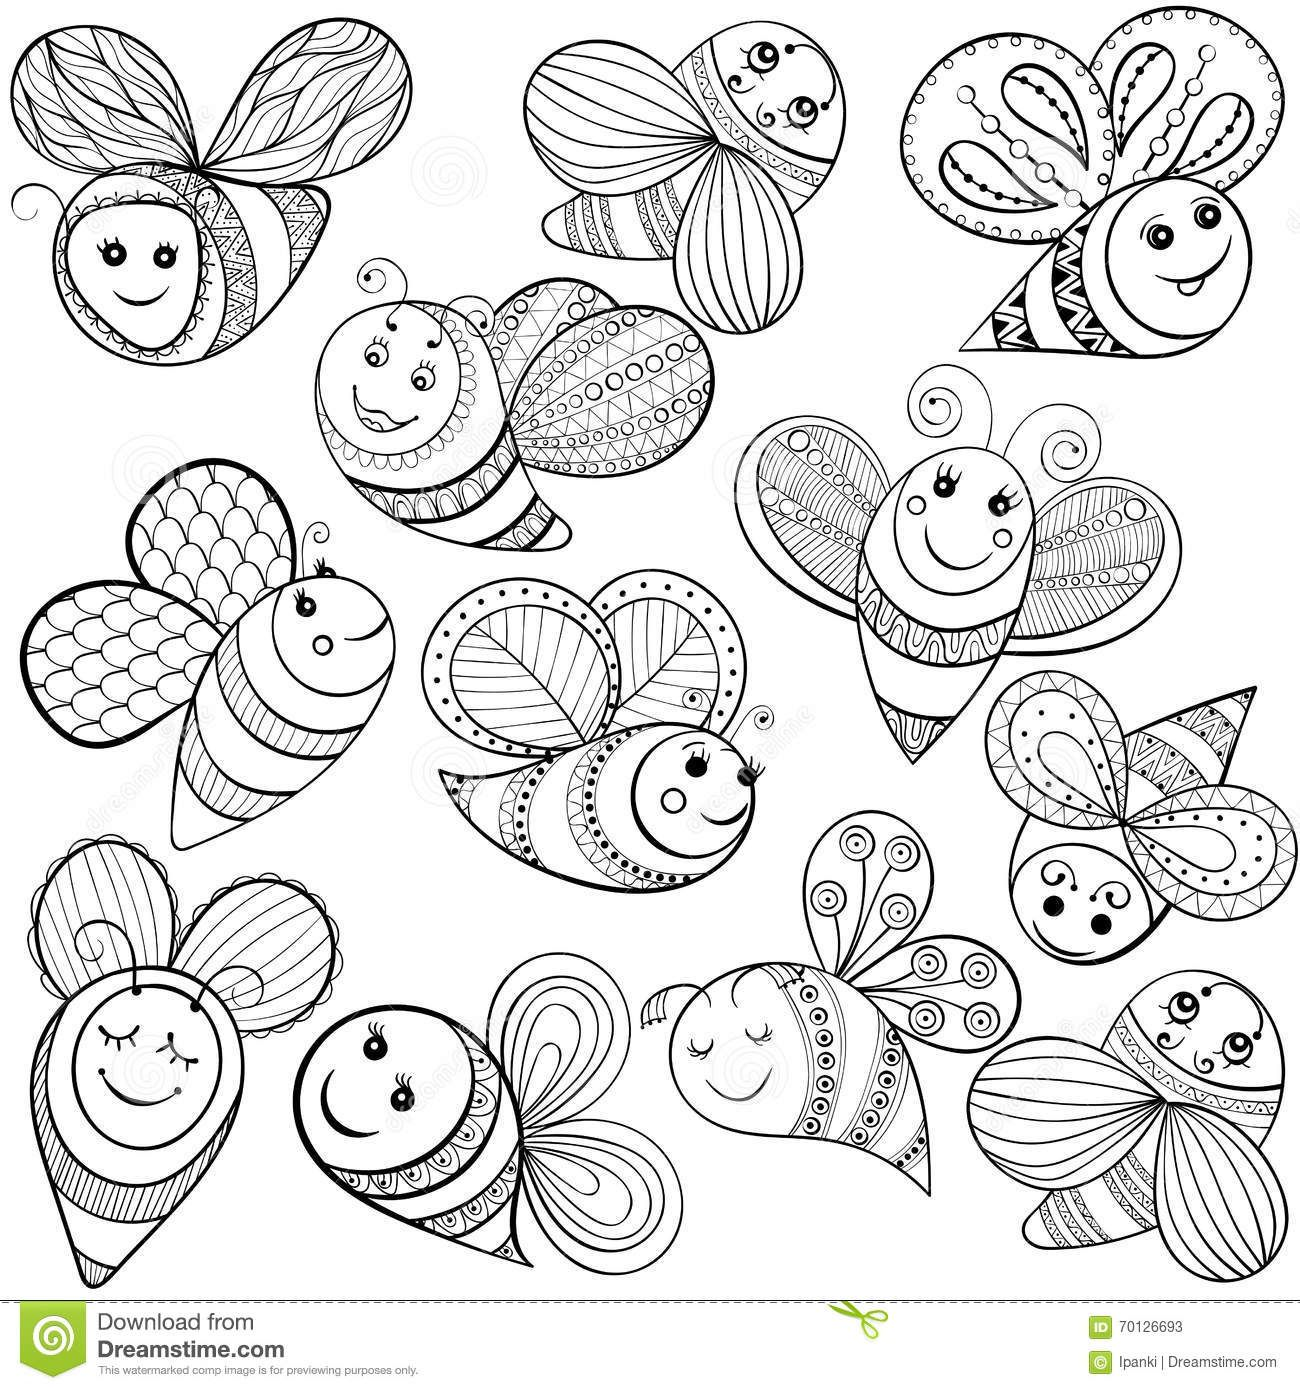 Bee Coloring Pages Drawing Inspiration Clipart Best Clipart Best Bee Coloring Pages Bee Stencil Bee Printables